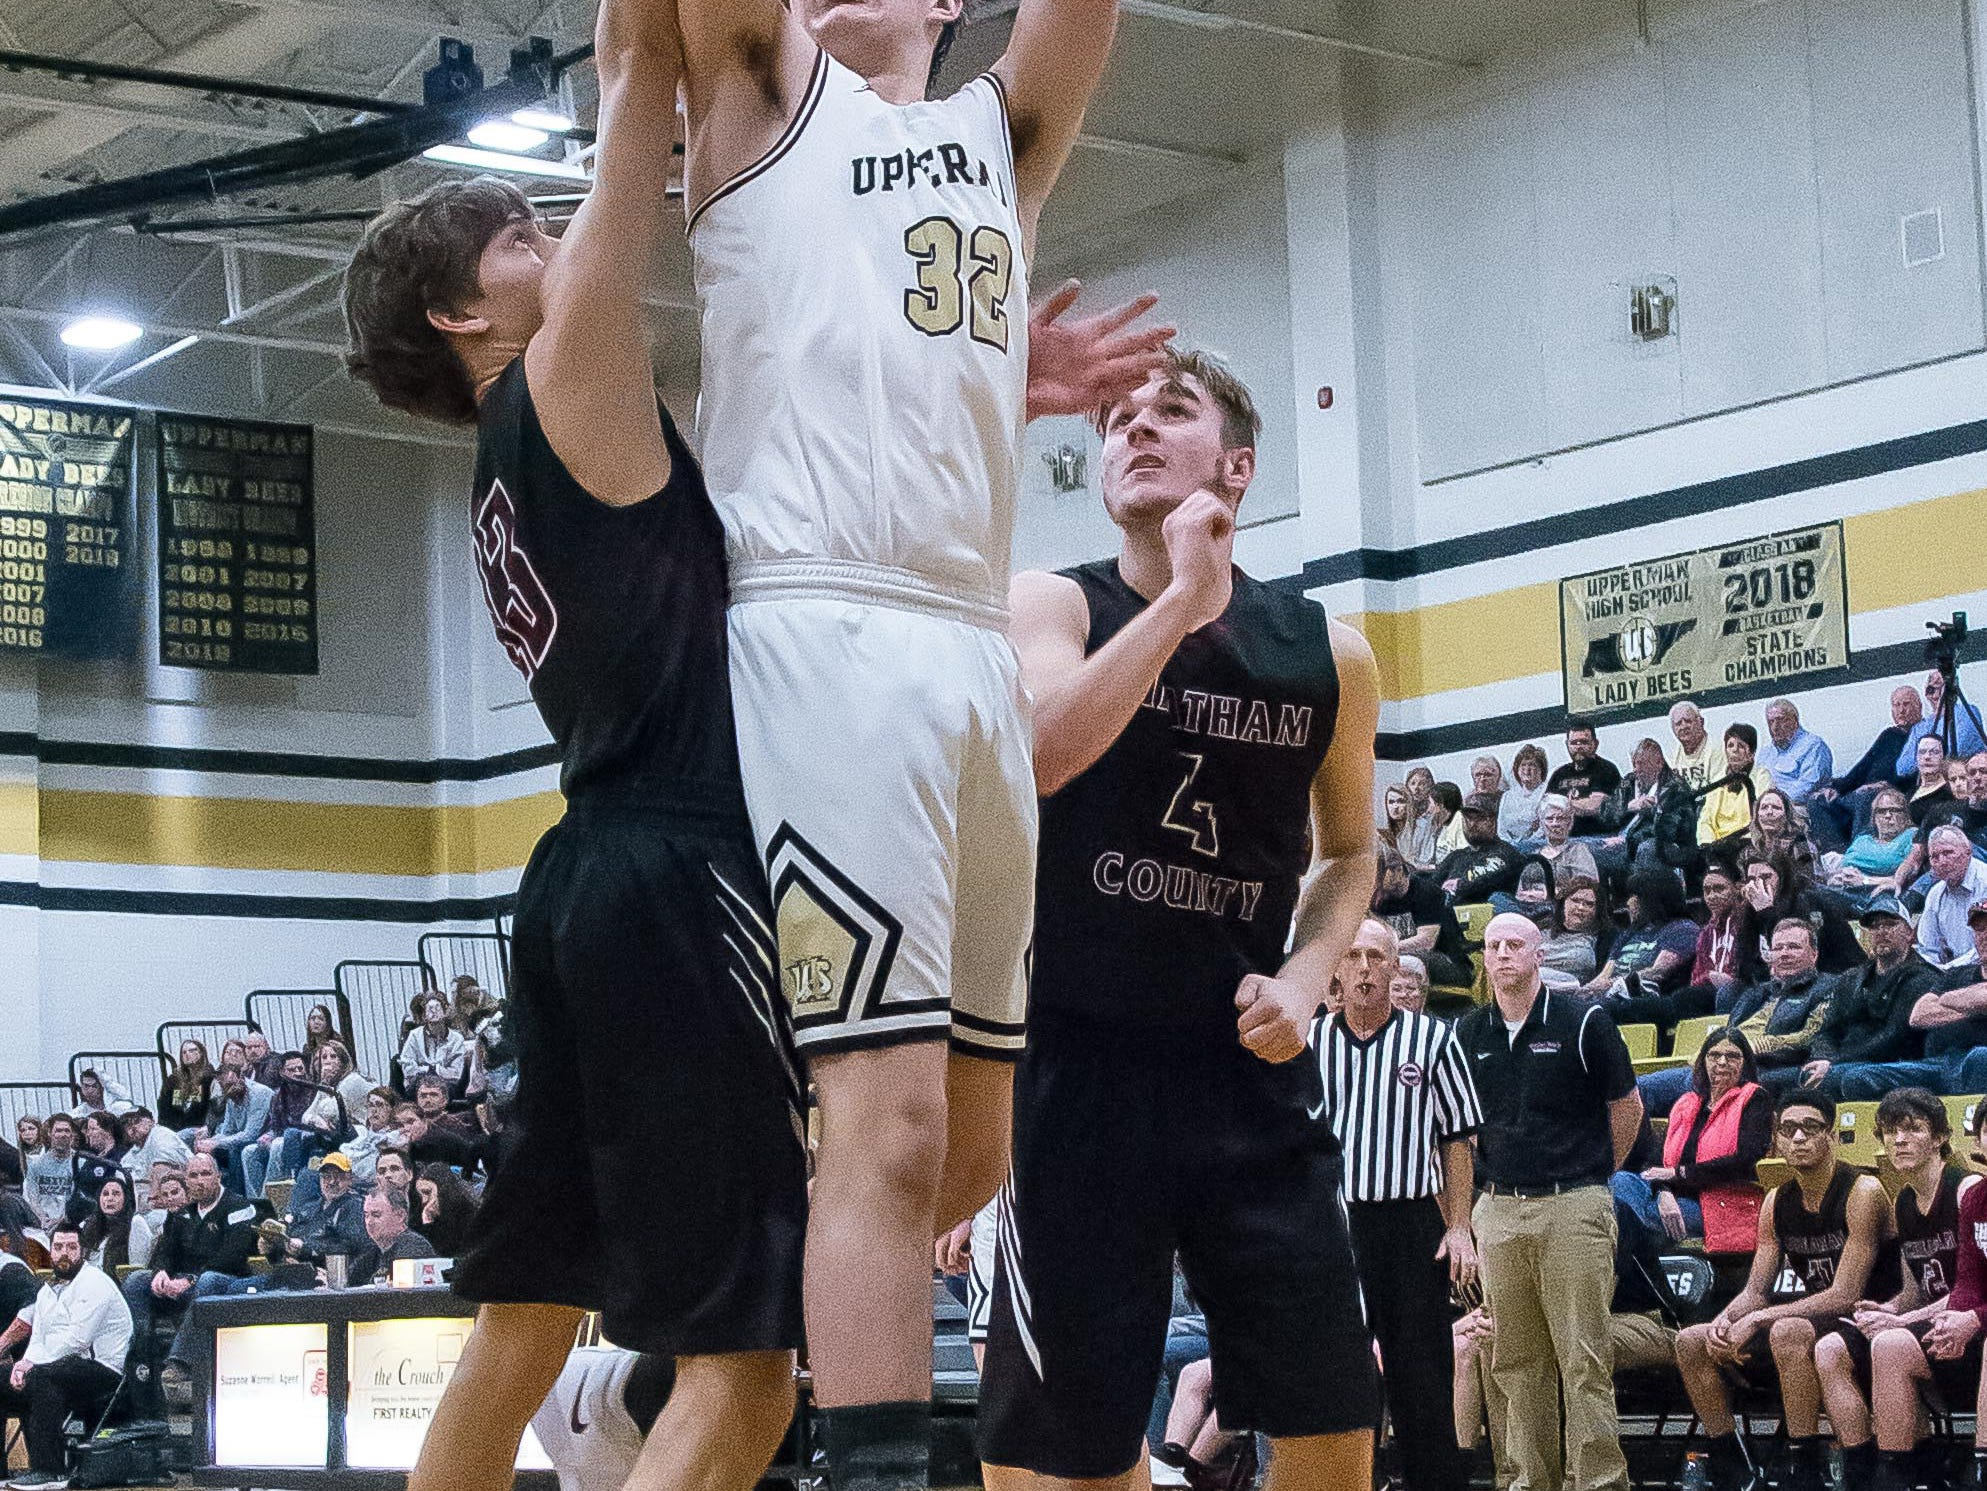 Another look at Alex Rush putting up two for Upperman.